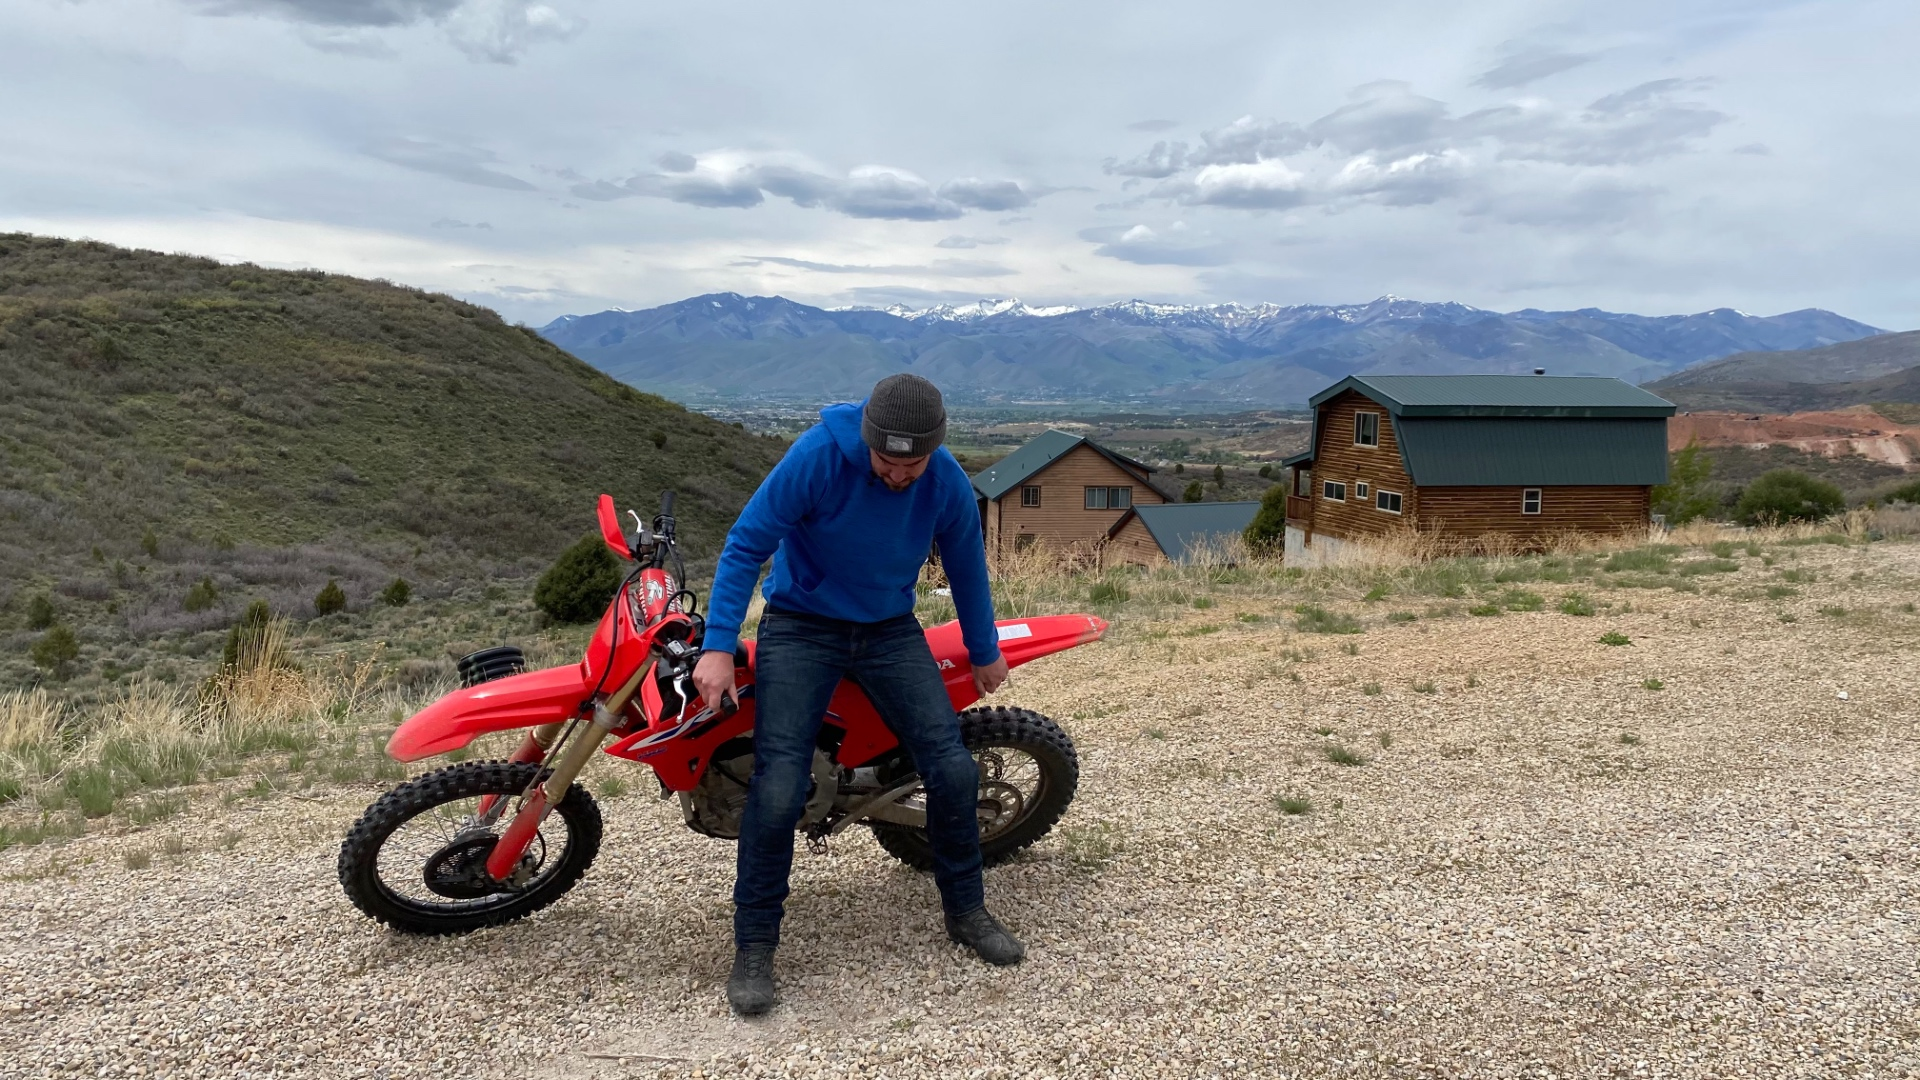 Using your legs to lift the CRF450RX.